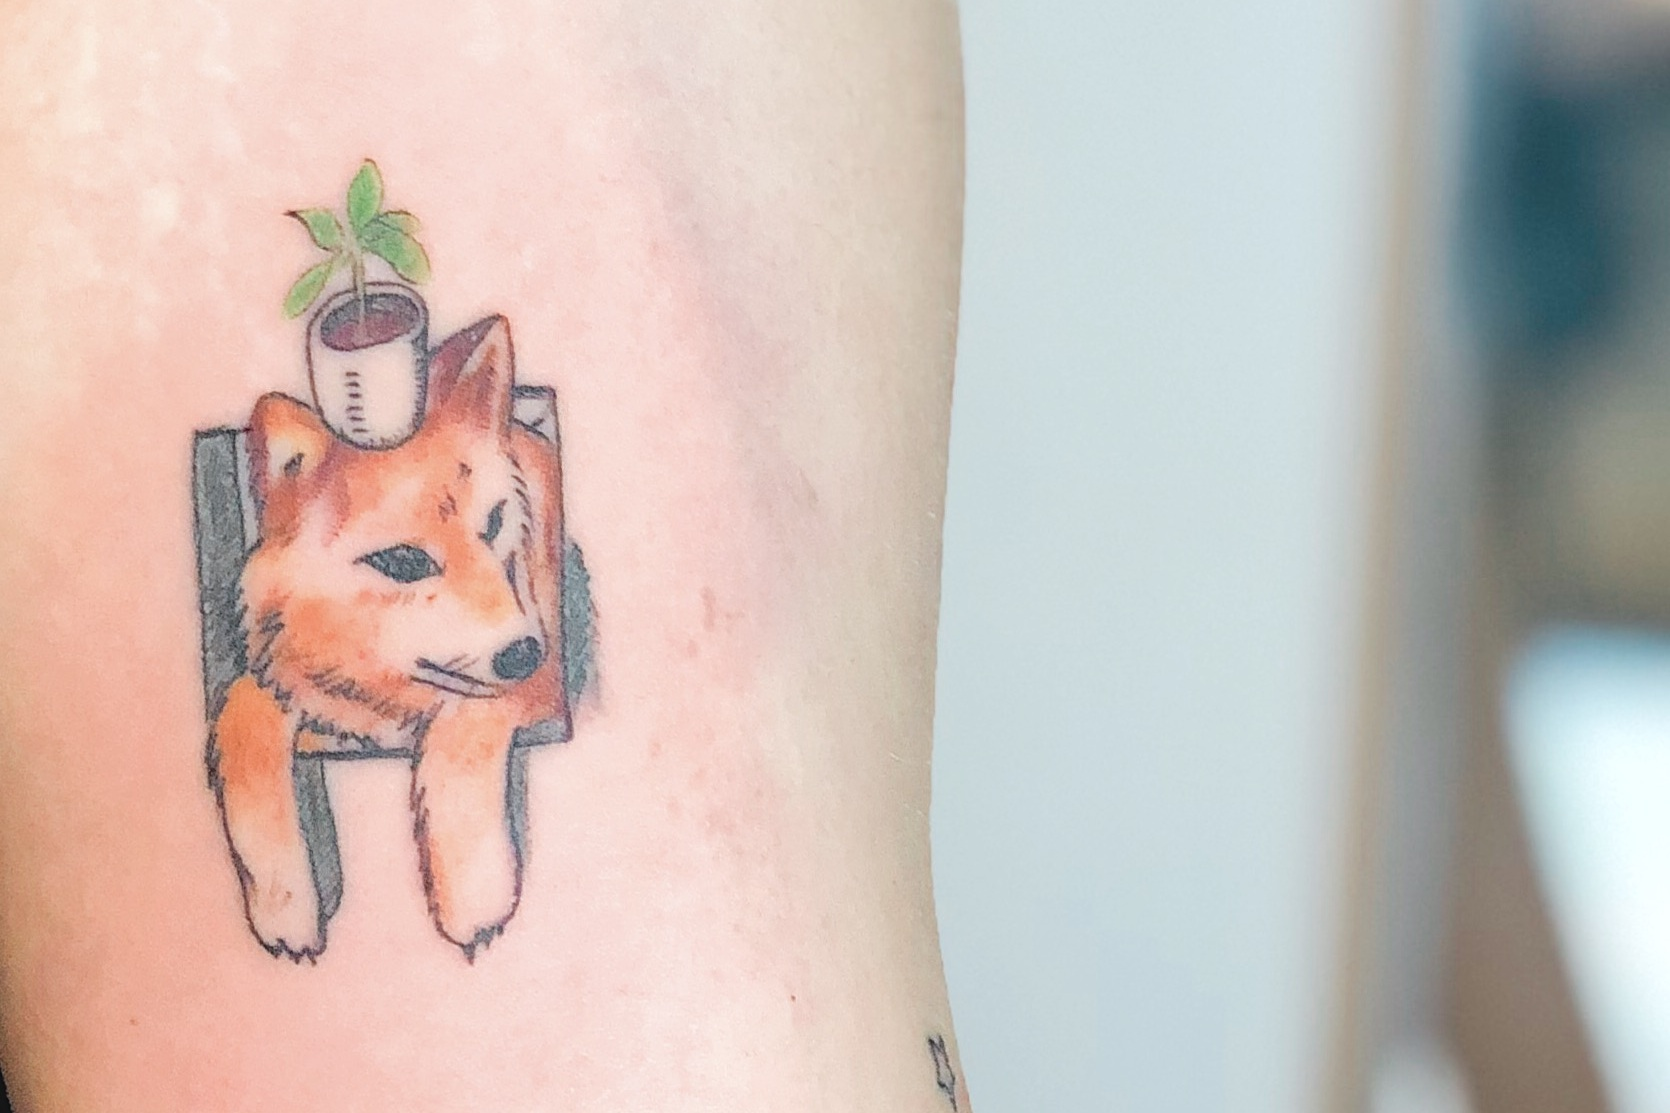 Tattoo Artist:    Hannah Kang      kikkujo's  dog is cute. I like to think the dog is encouraging the growth of his little plant buddy and me.